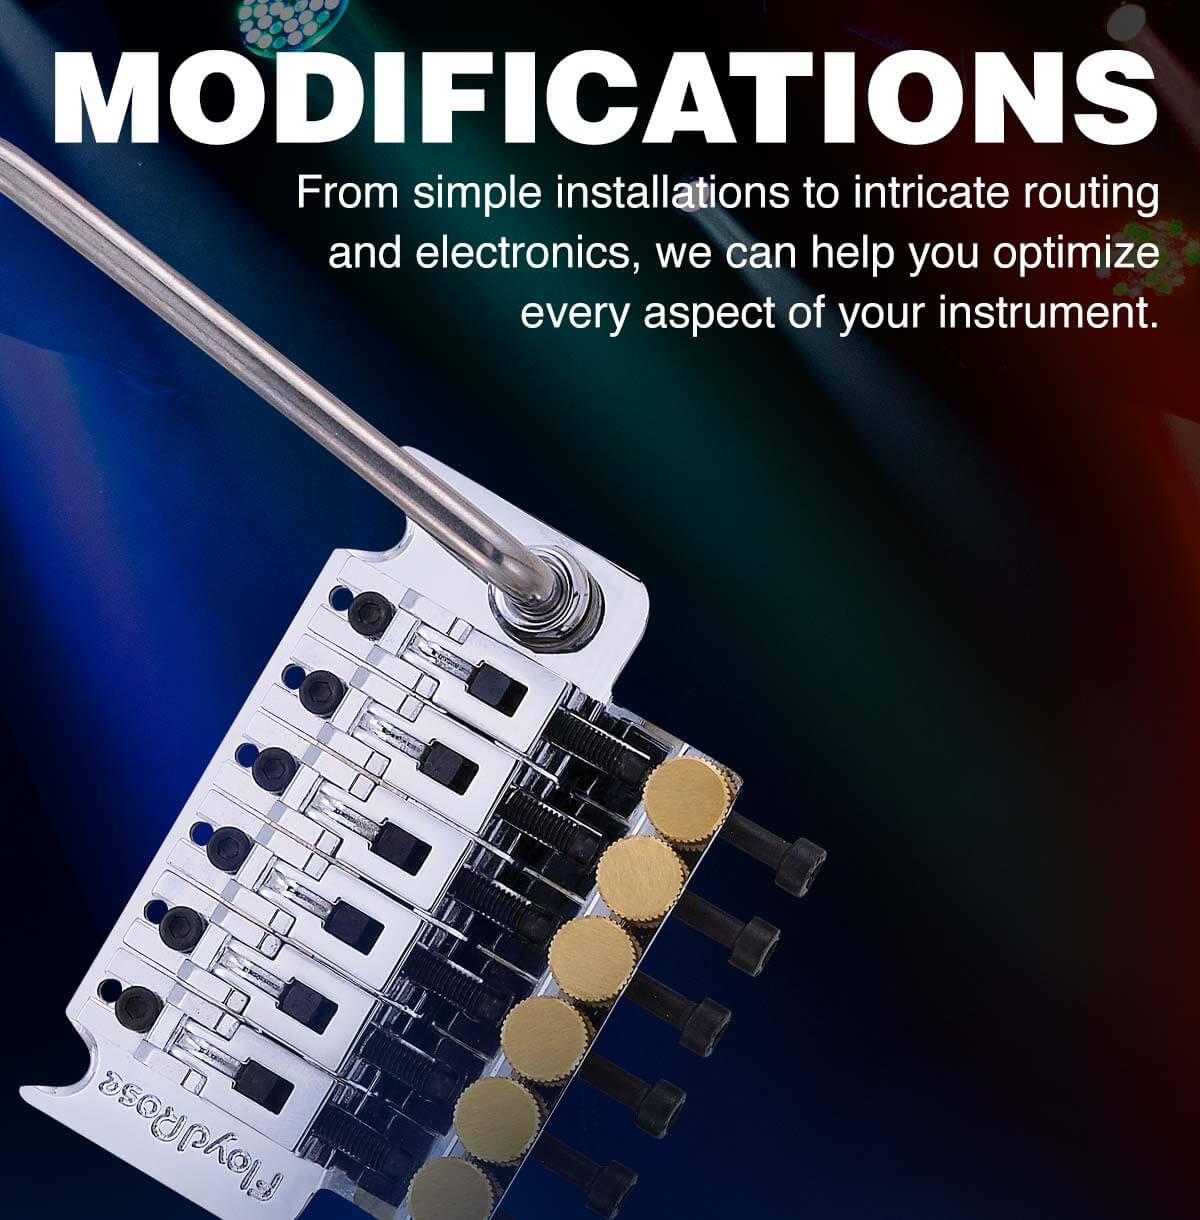 Modifications. From simple installations to intricate routing and electronics, we can help you optimize every aspect of your instrument.